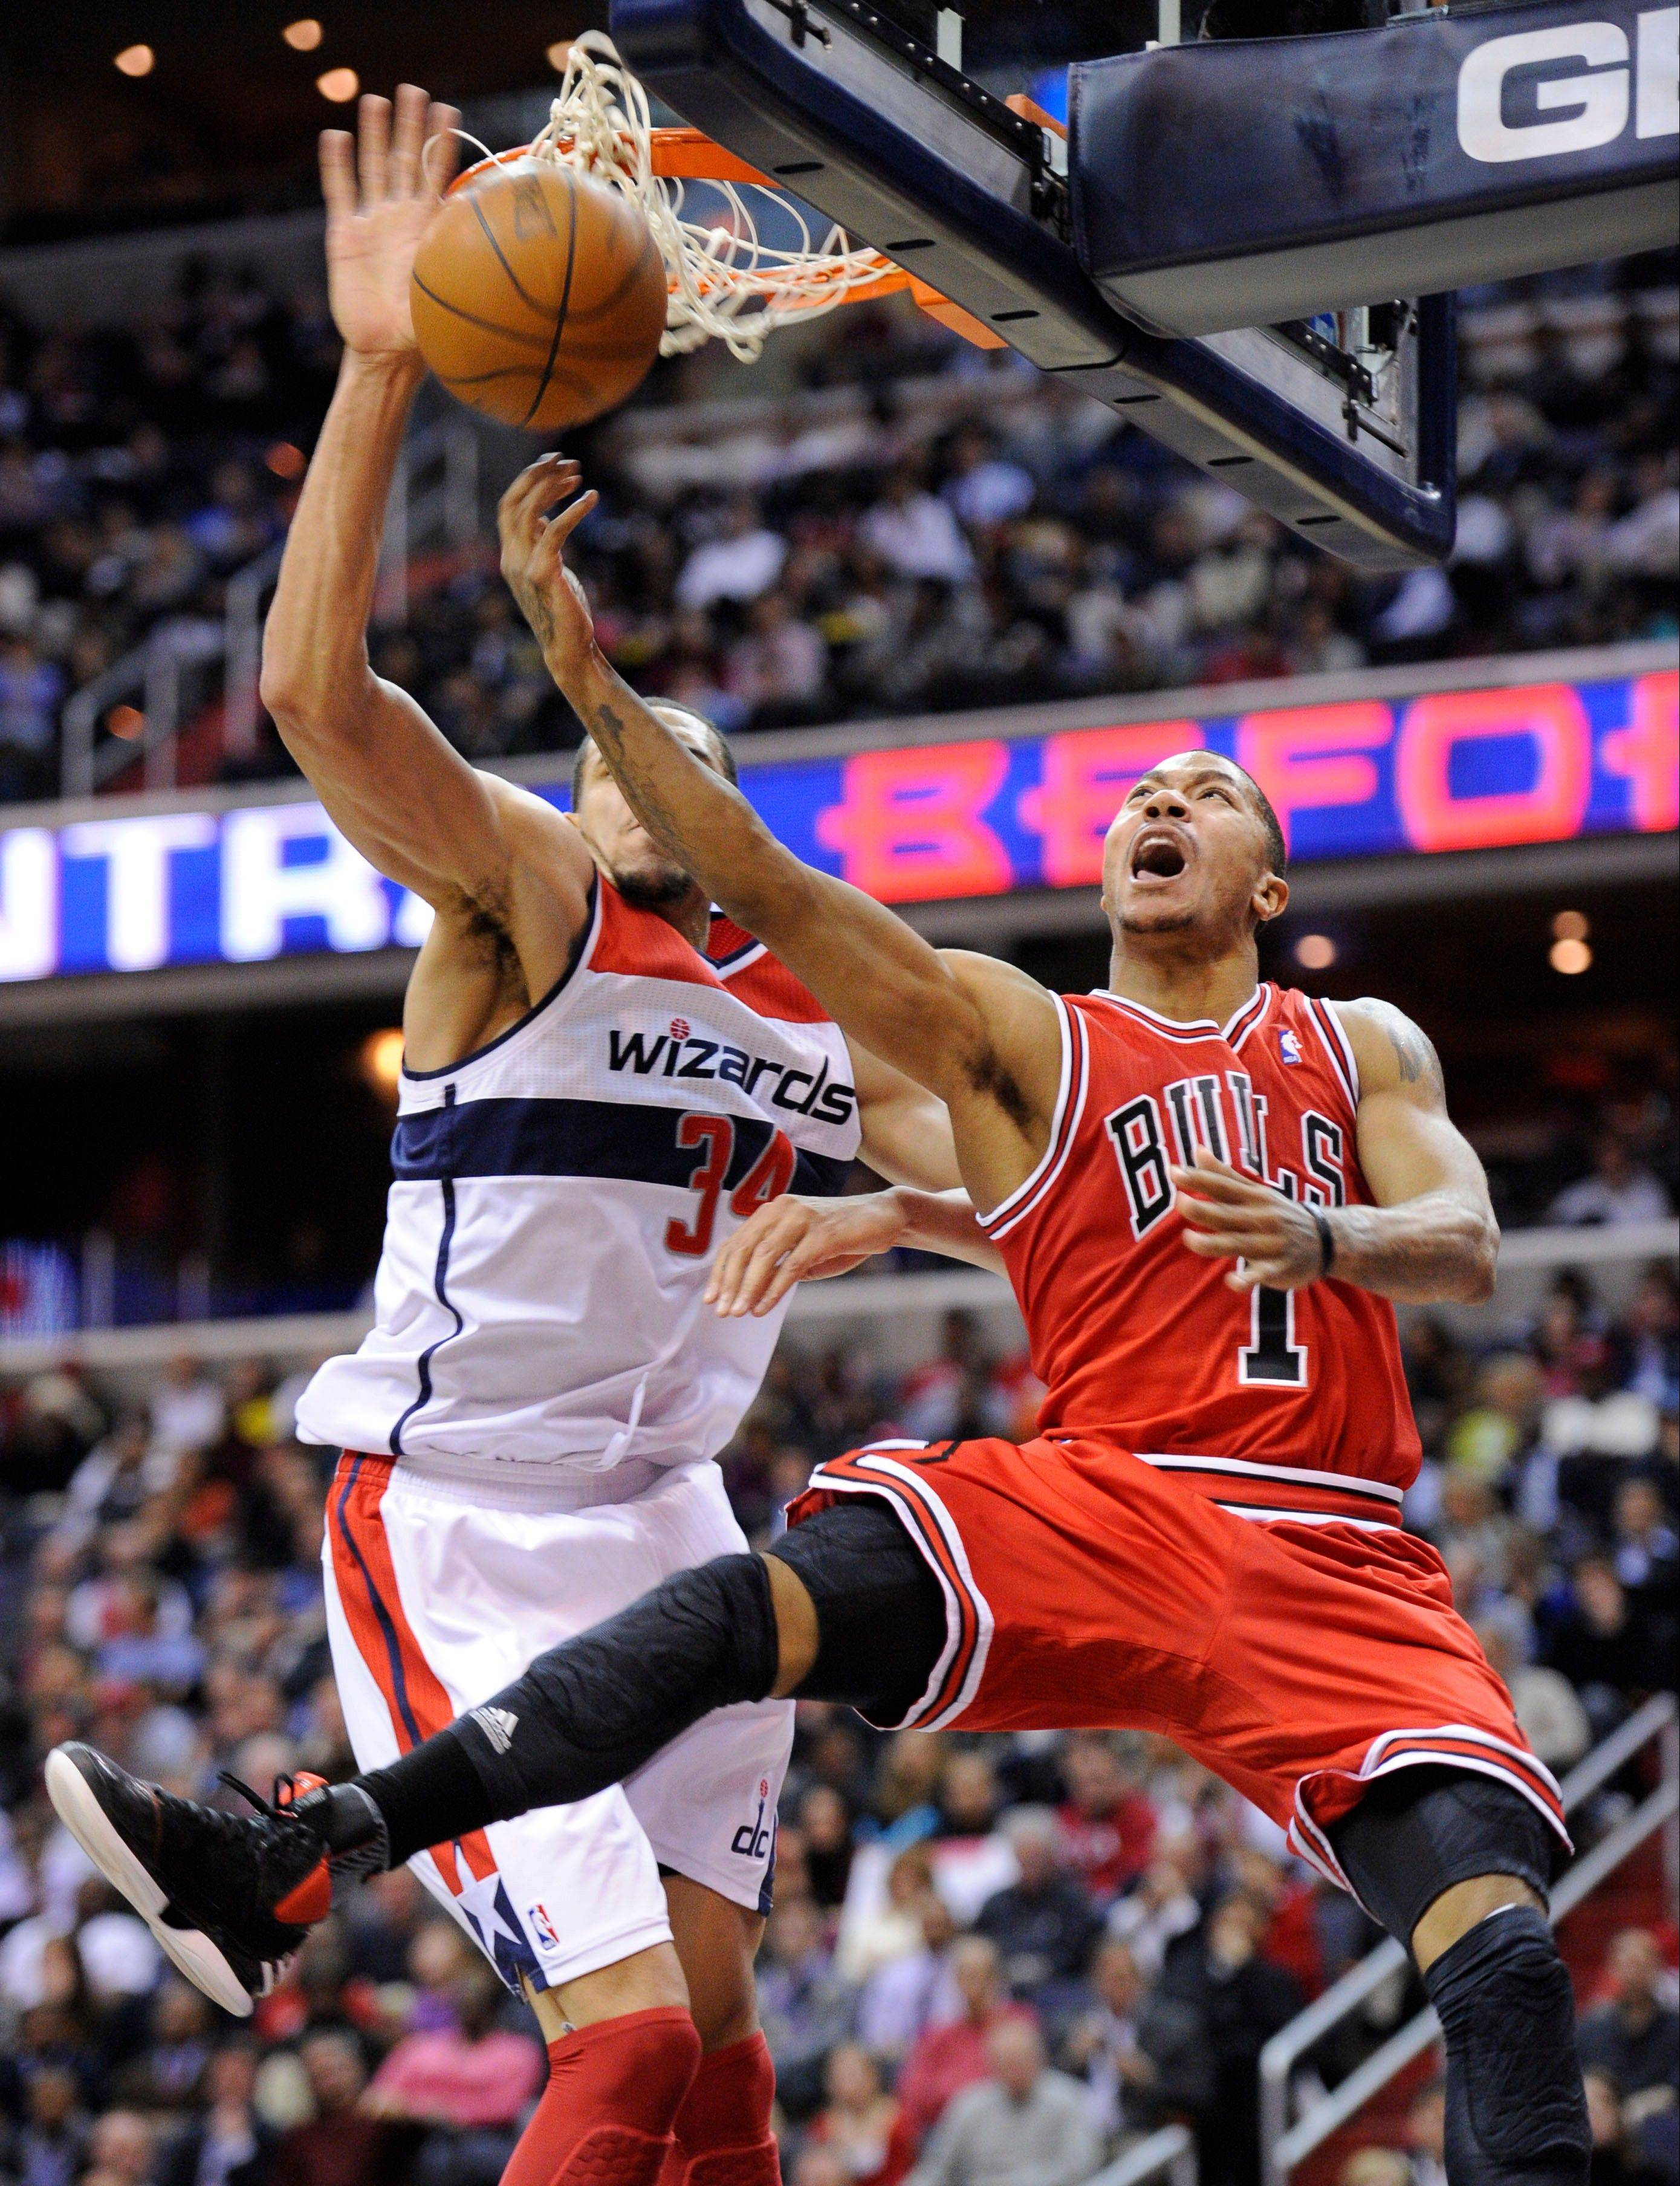 The Bulls' Derrick Rose scored 35 points and dished out 8 assists Monday night against the Wizards.